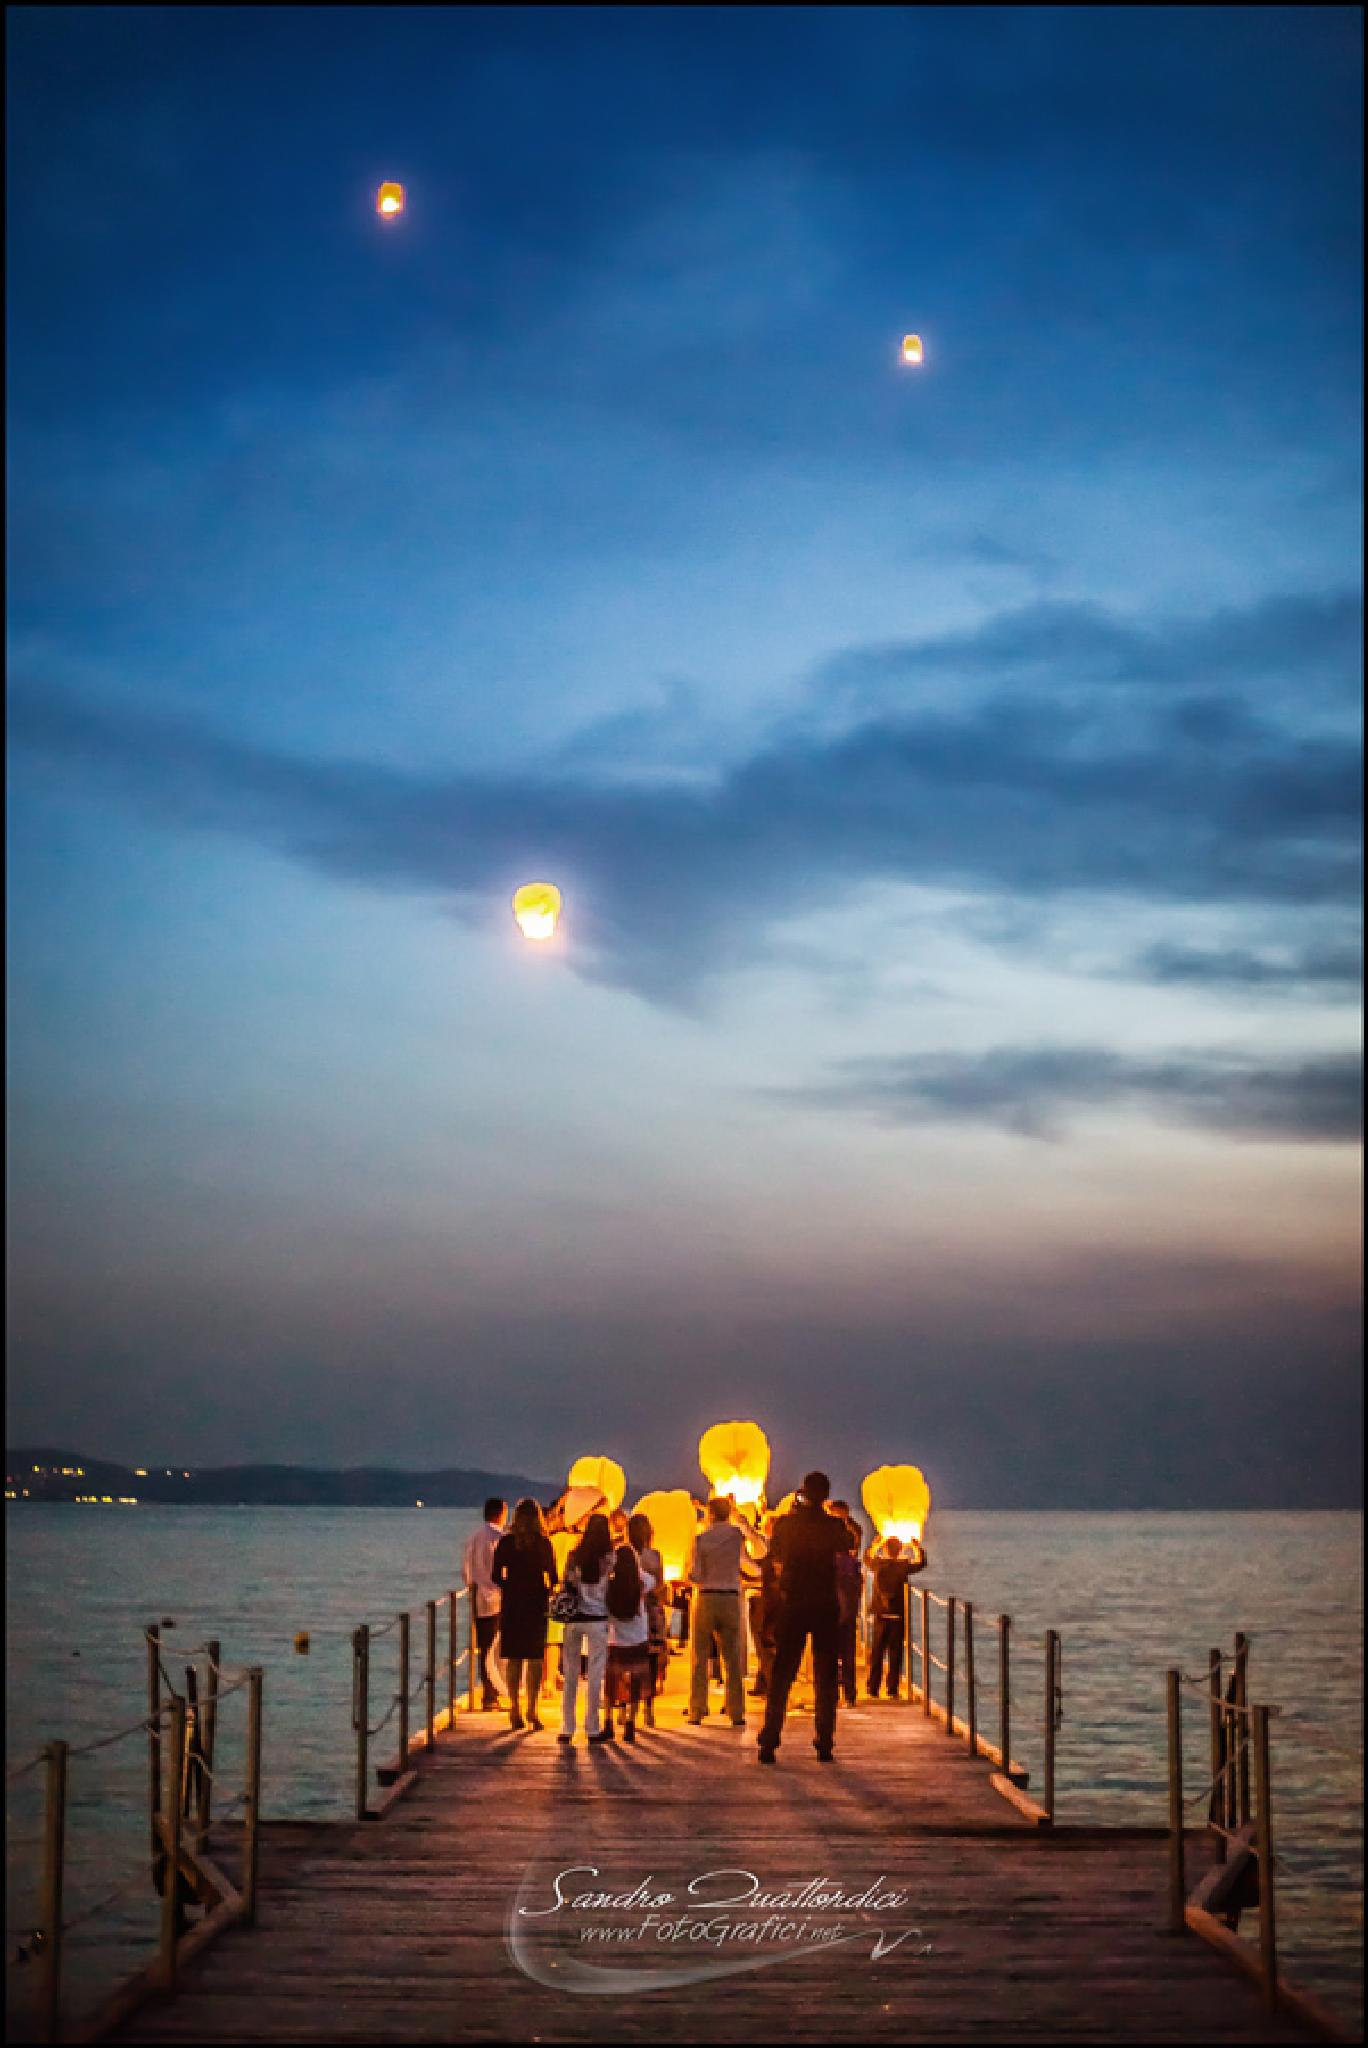 Summer's Lanterns by Sandro Quattordici